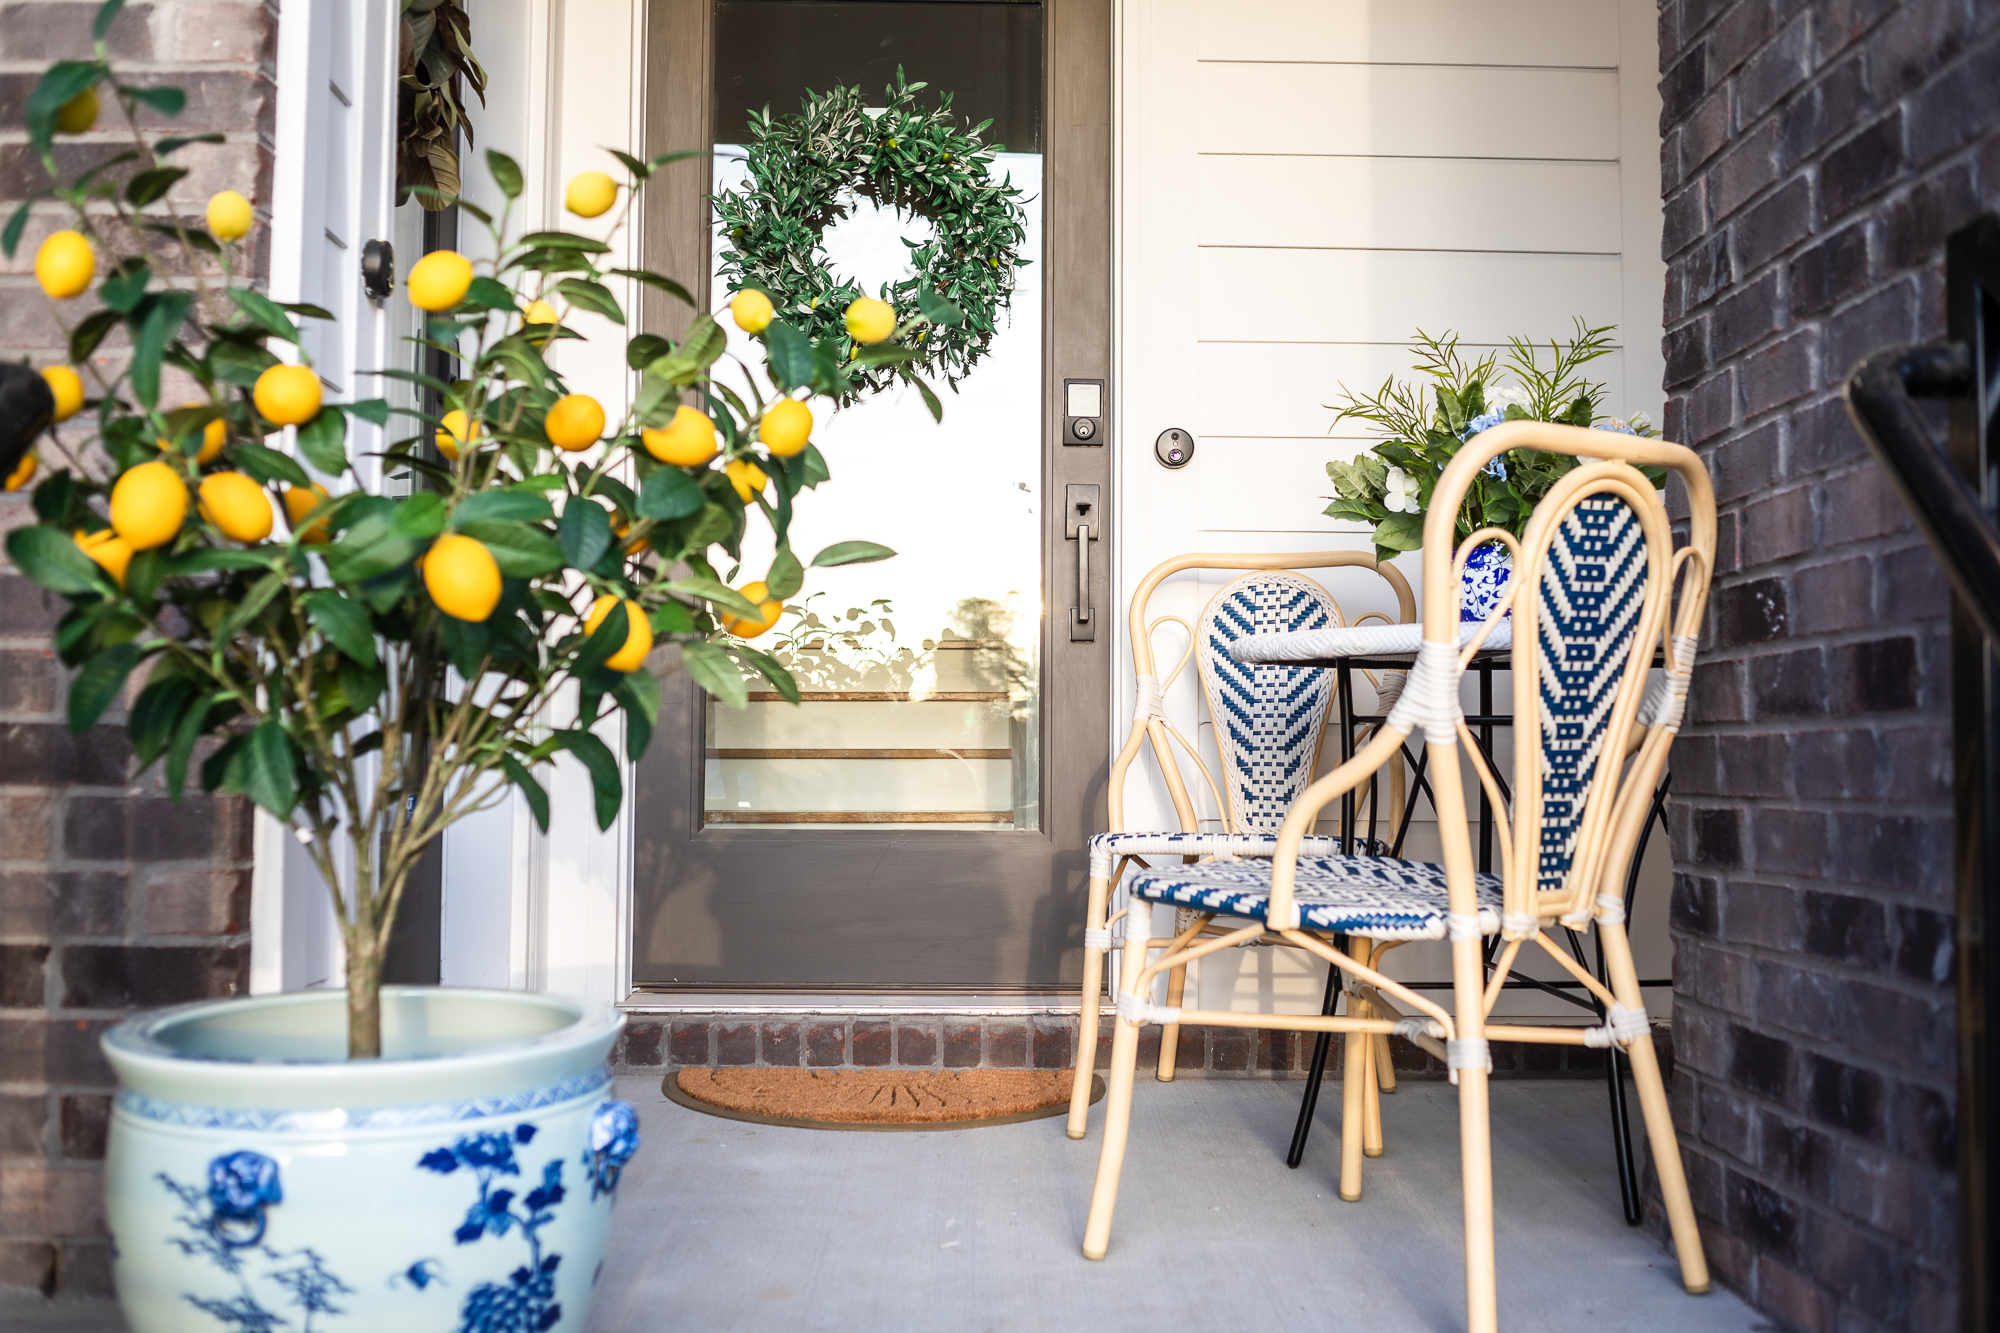 """front porch spring styling, front porch decor, how to decorate a front porch for spring, faux trees, faux plants, faux greenery, faux lemon tree, spring home decor, frontgate Keller Bistro chair set of two, frontgate menorca bistro table, frontgate Sunburst Half-round Coco Door Mat, frontgate 50"""" Outdoor Lemon Potted Tree, frontgate Blue Ming Handpainted Ceramic Planters, frontgate Lush Olive Leaf Wreath, frontgate Blooming Mixed Hydrangea in Ming Vase"""